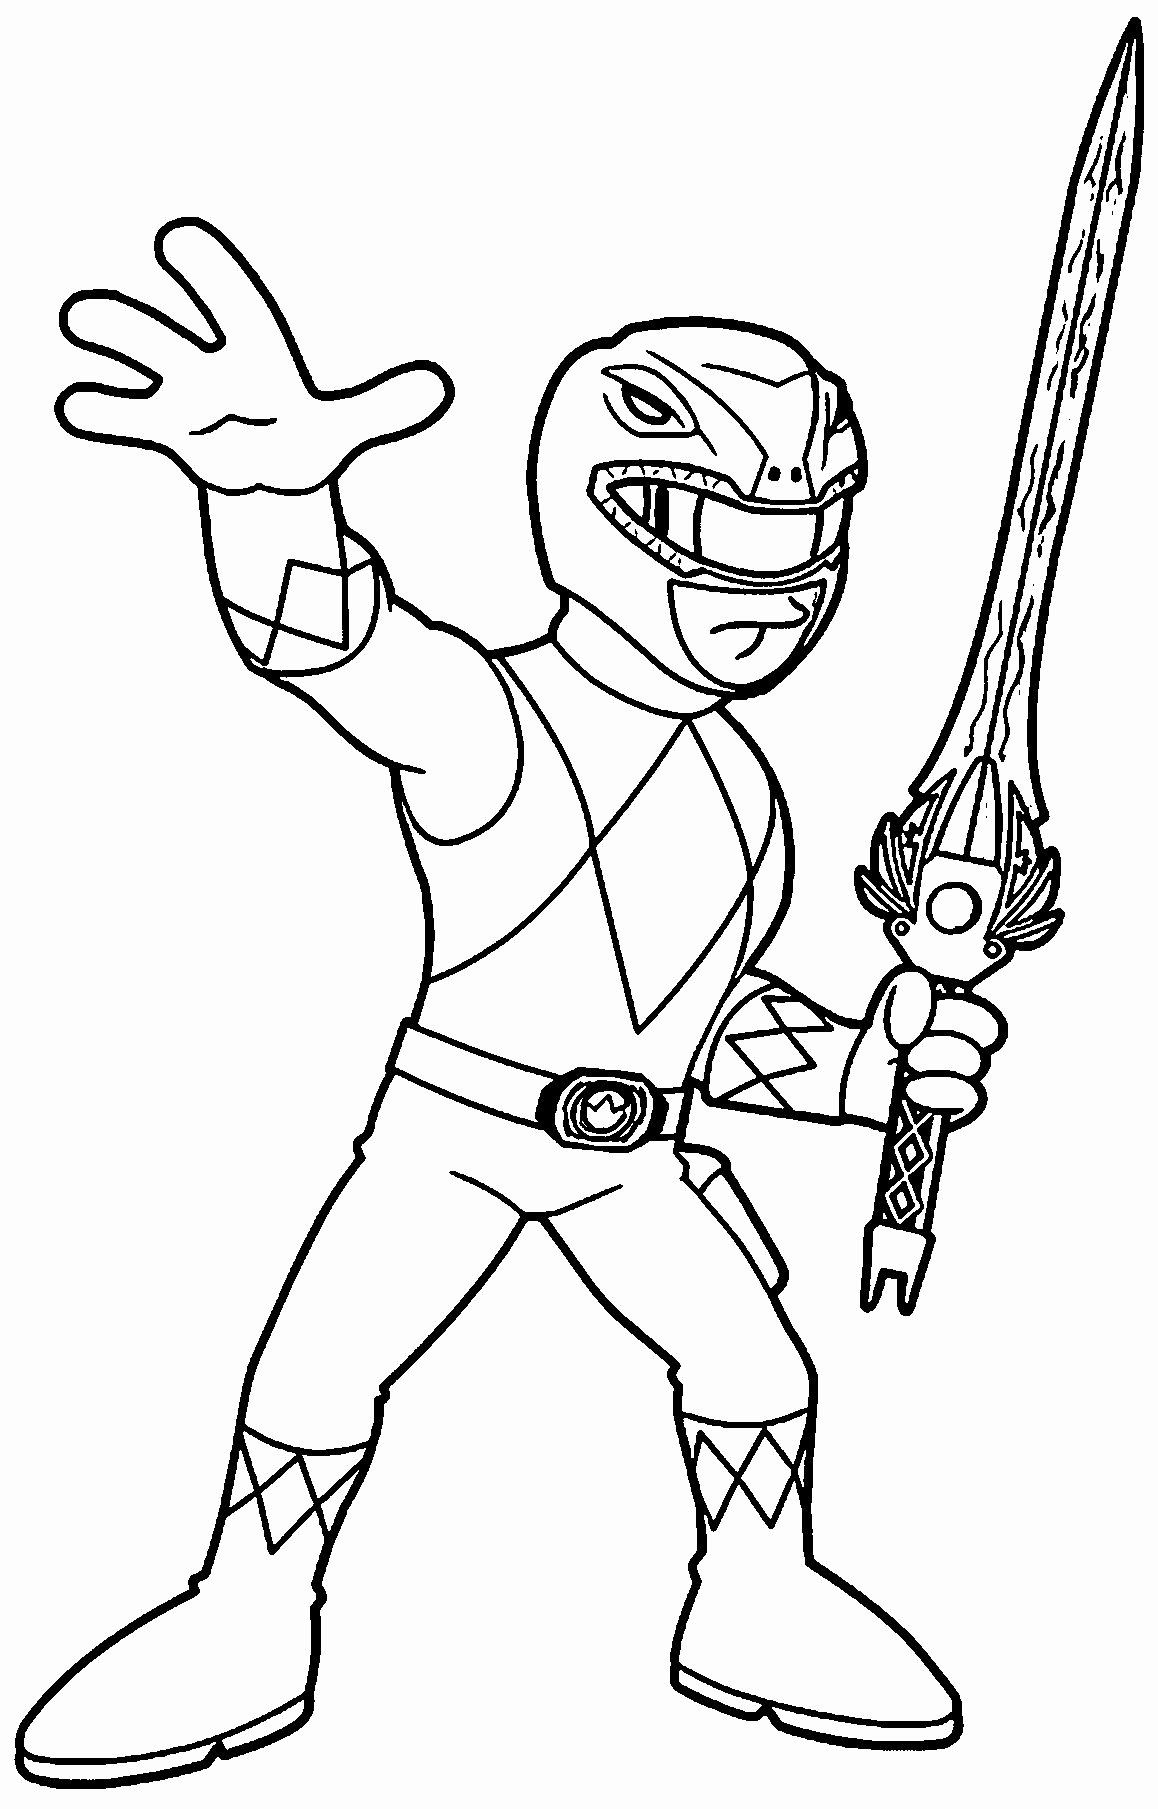 Power Rangers Coloring Book Lovely Aˆs 32 Power Ranger Coloring Book In 2020 Power Rangers Coloring Pages Dinosaur Coloring Pages Coloring Books